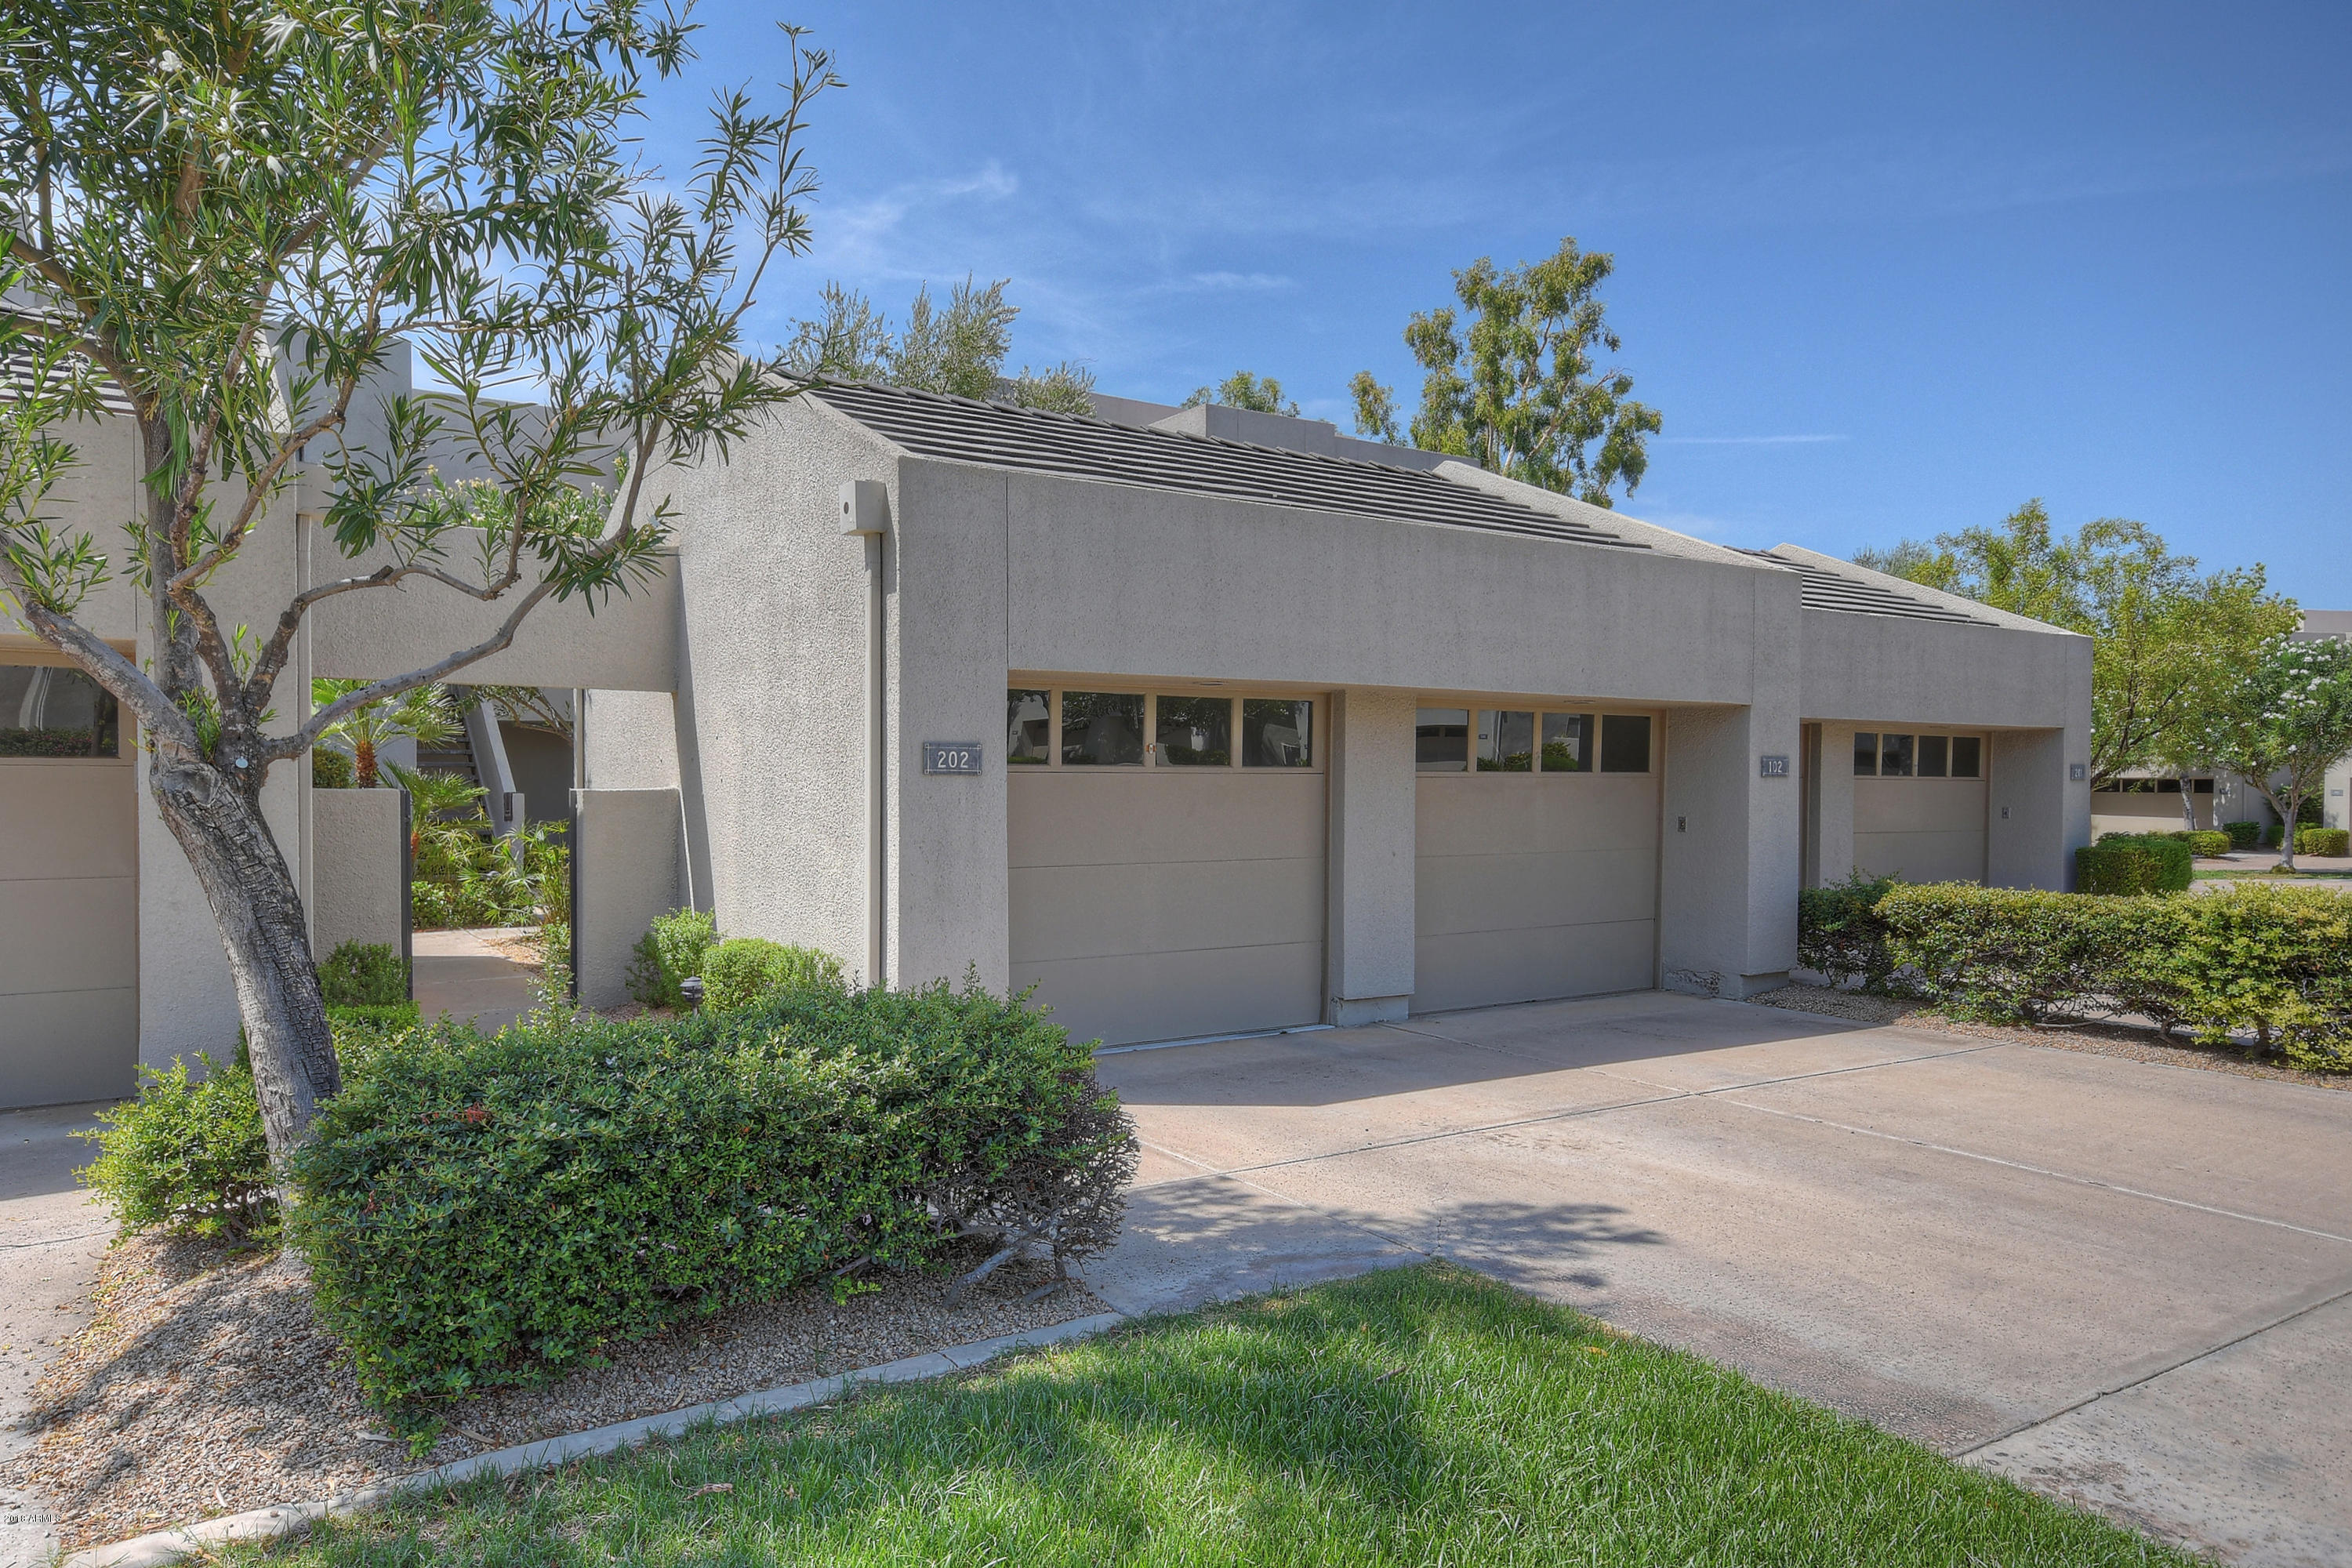 MLS 5801715 7700 E GAINEY RANCH Road Unit 102, Scottsdale, AZ 85258 Scottsdale AZ Gainey Ranch